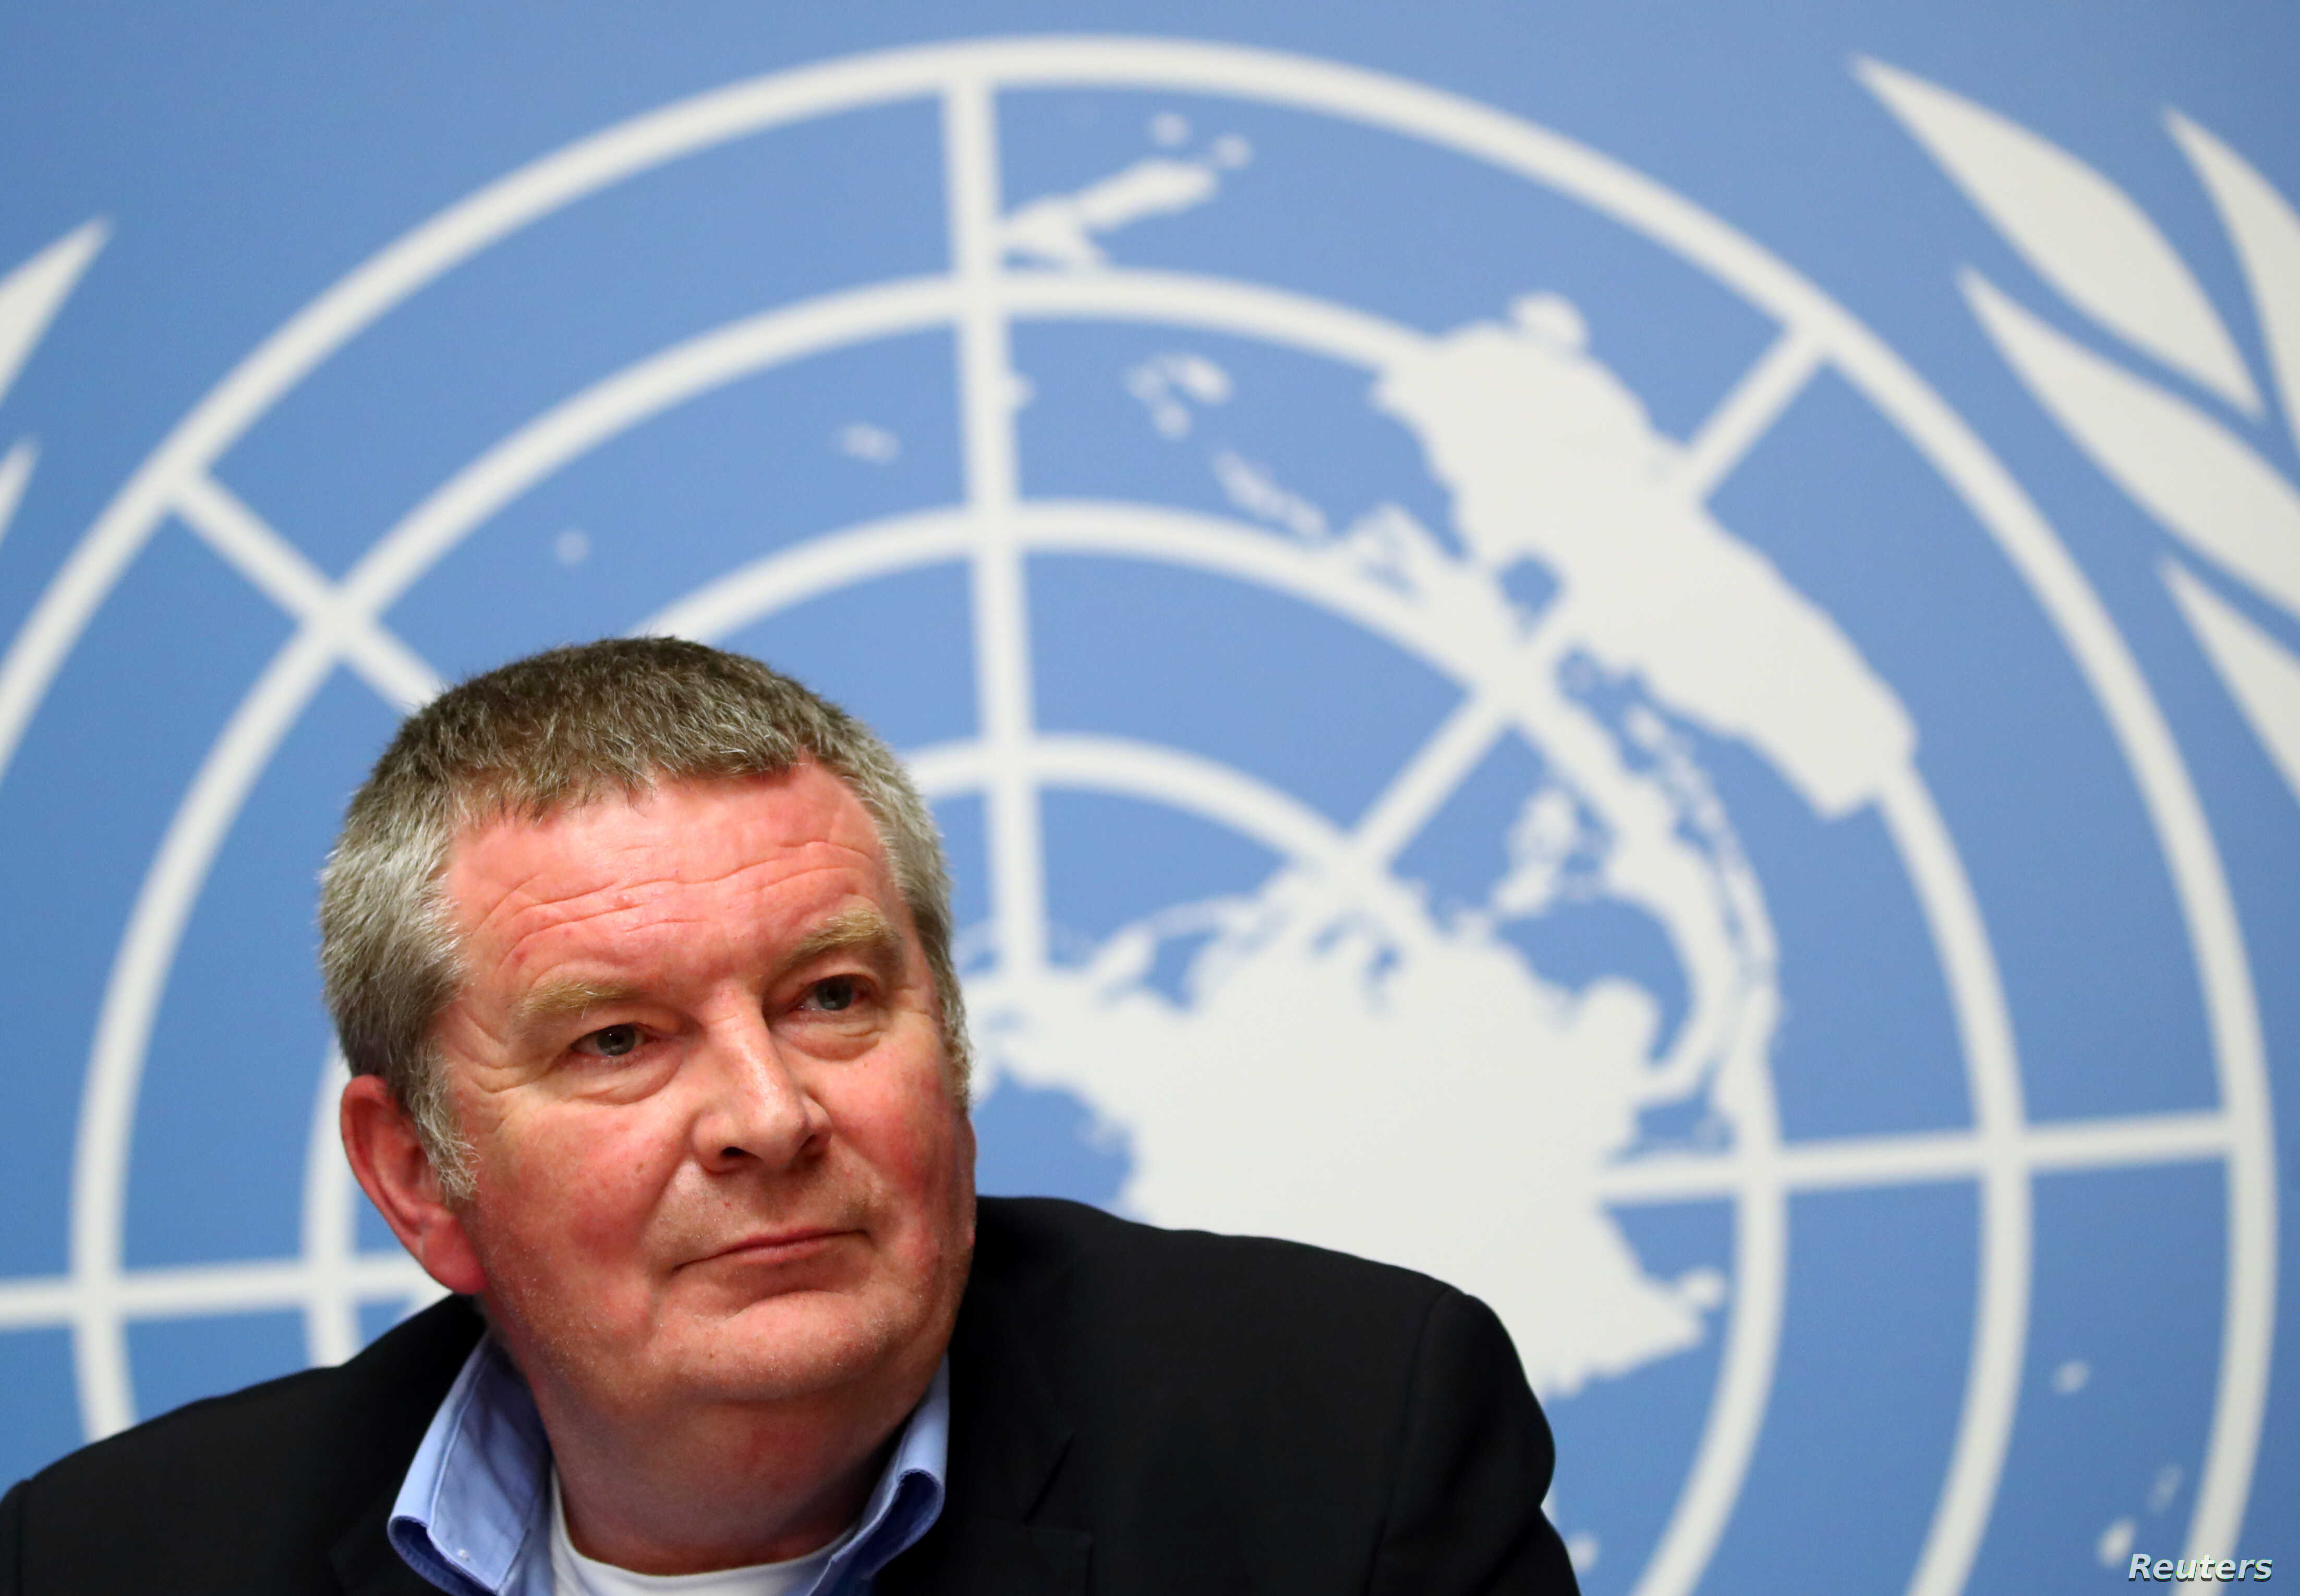 Mike Ryan, executive director of the World Health Organization, attends a news conference on the Ebola outbreak in the Democratic Republic of Congo at the United Nations in Geneva, May 3, 2019.